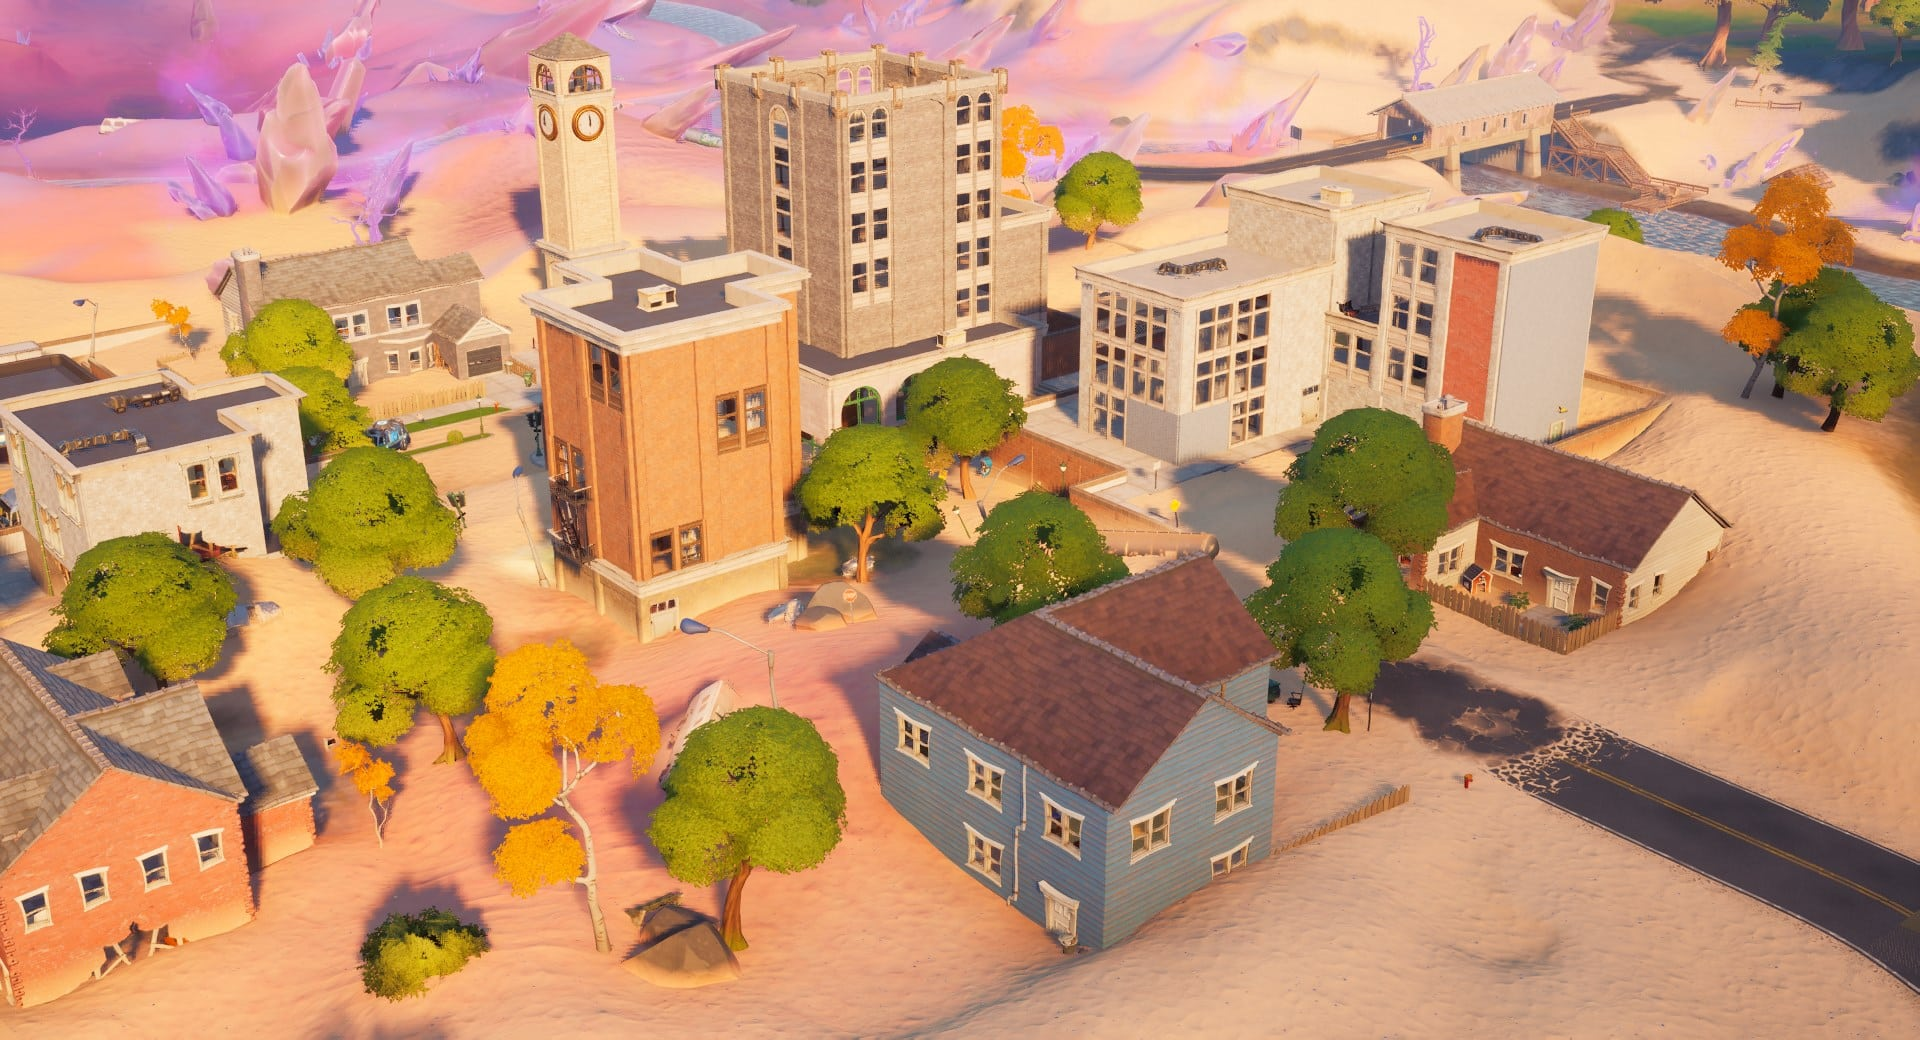 Salty Towers in Fortnite Season 5.